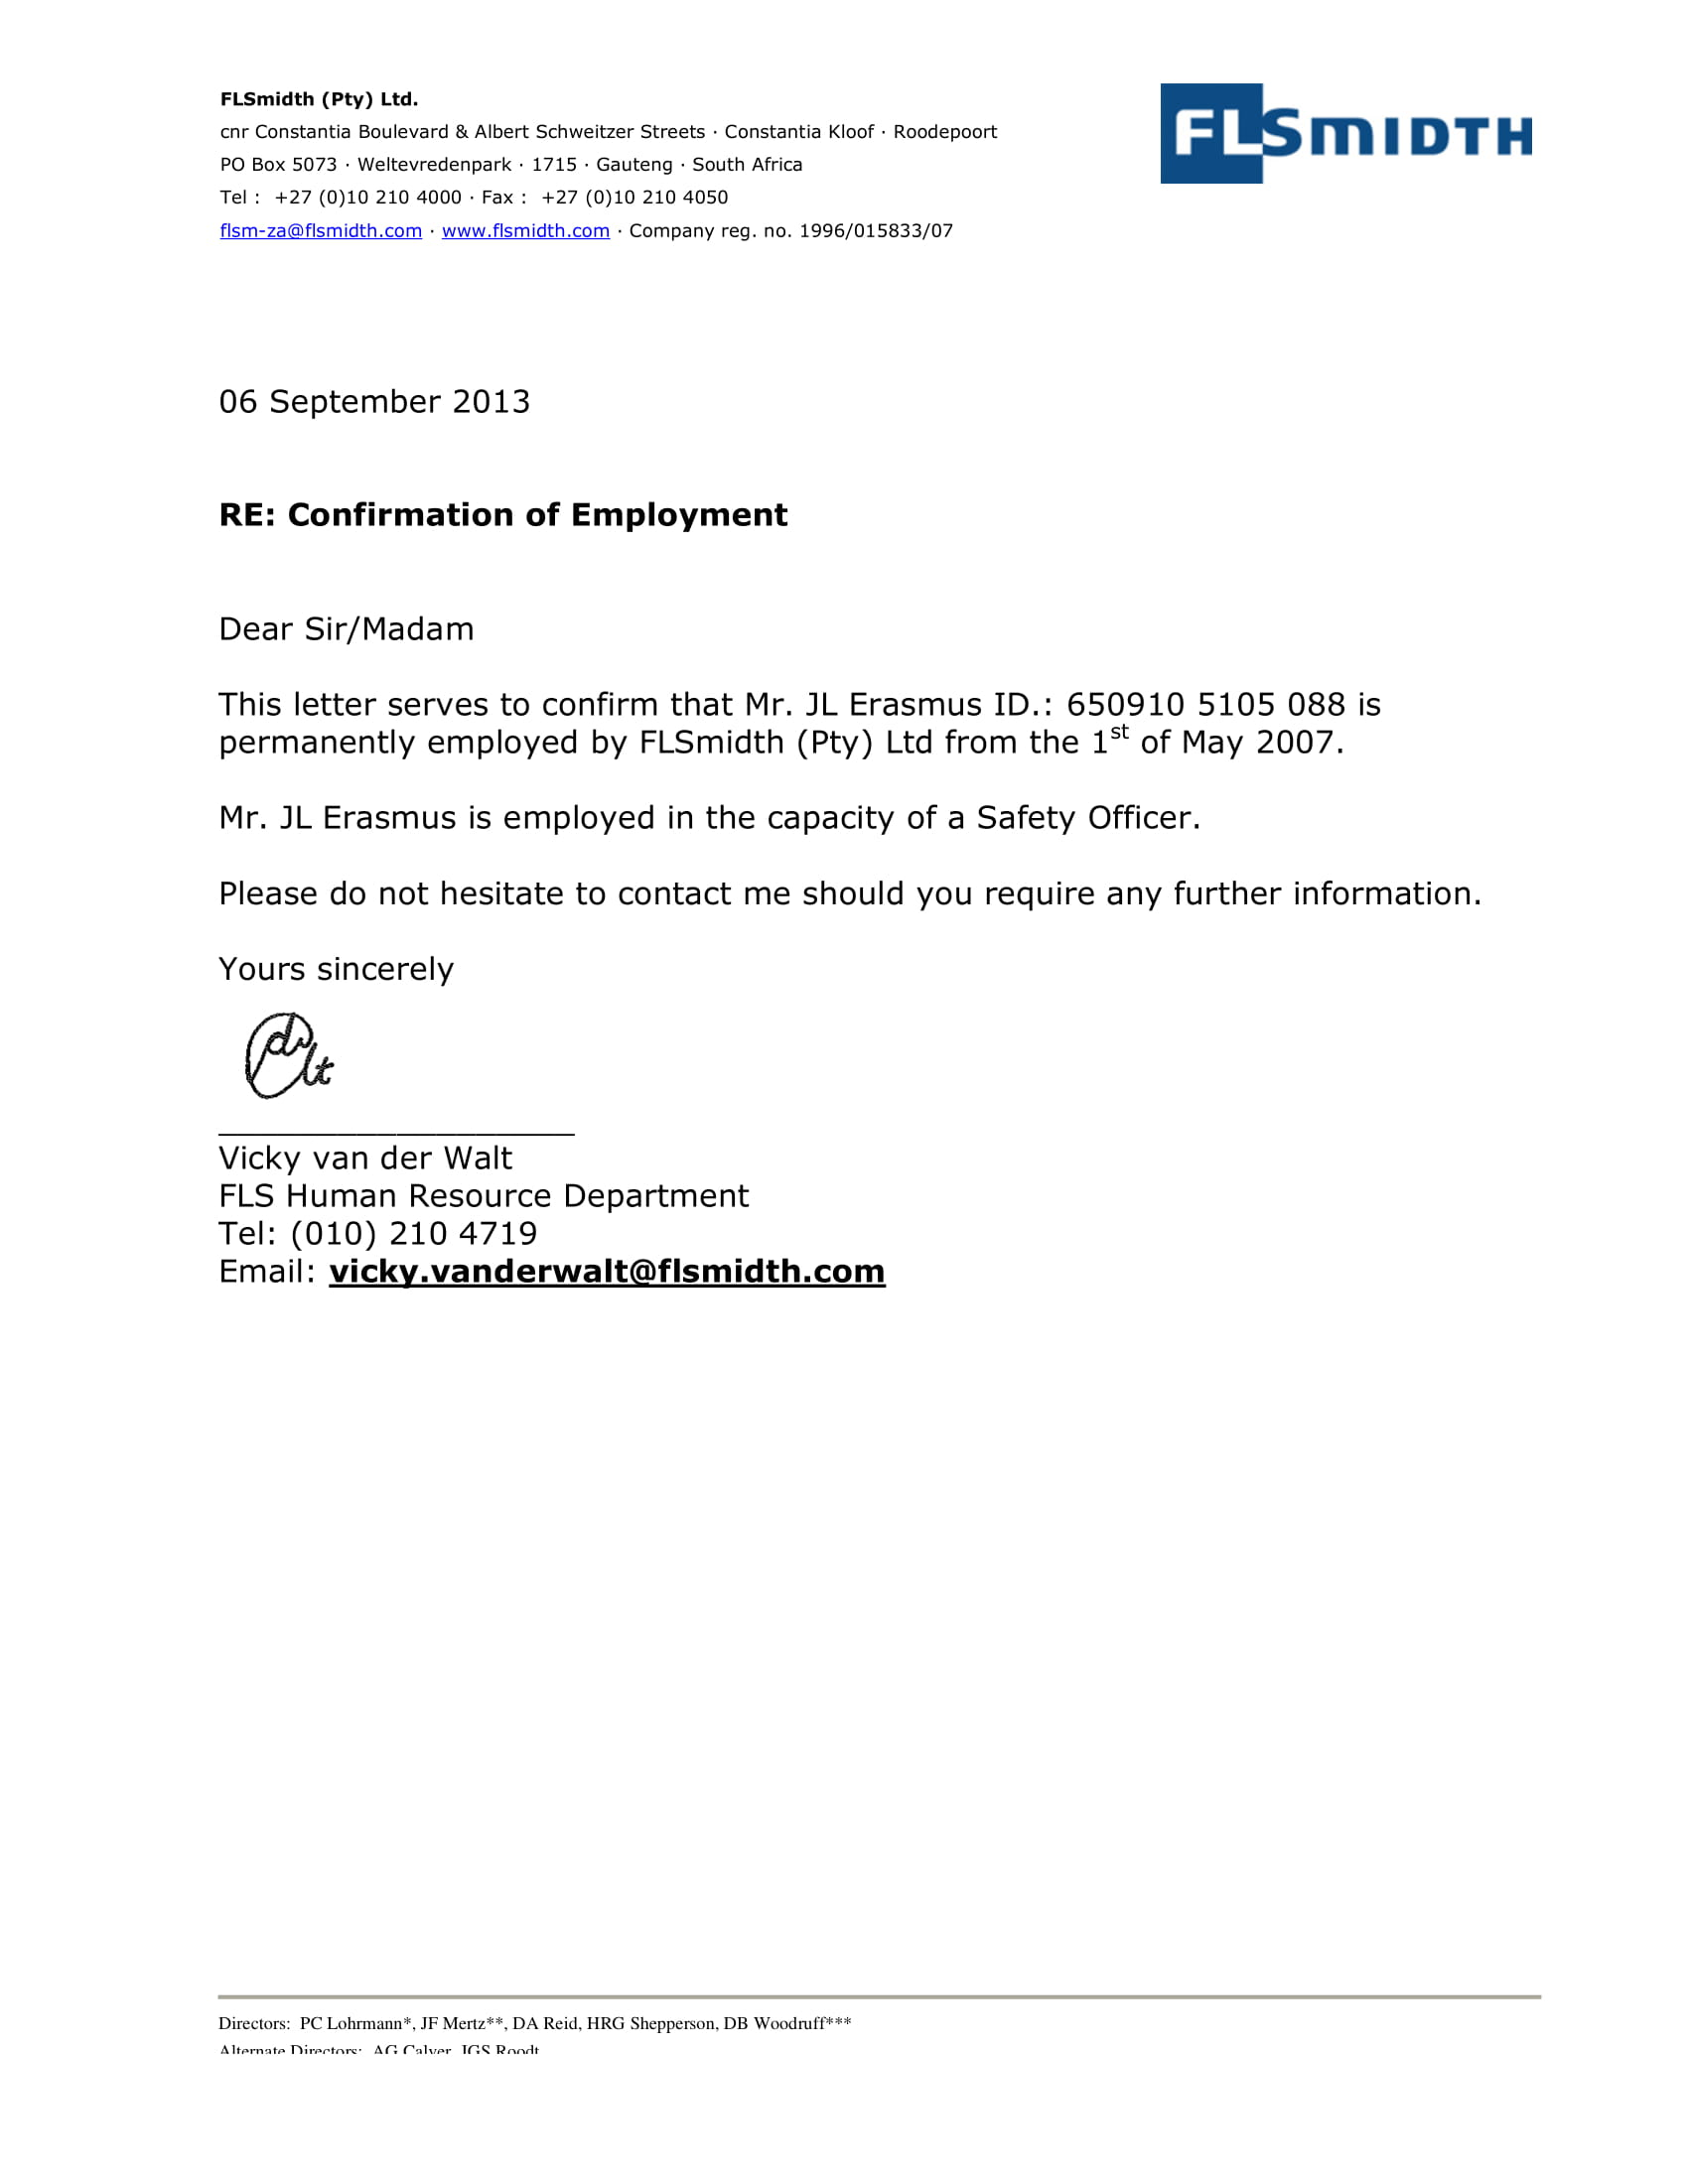 14 Employment Verification Letter Examples Pdf Doc